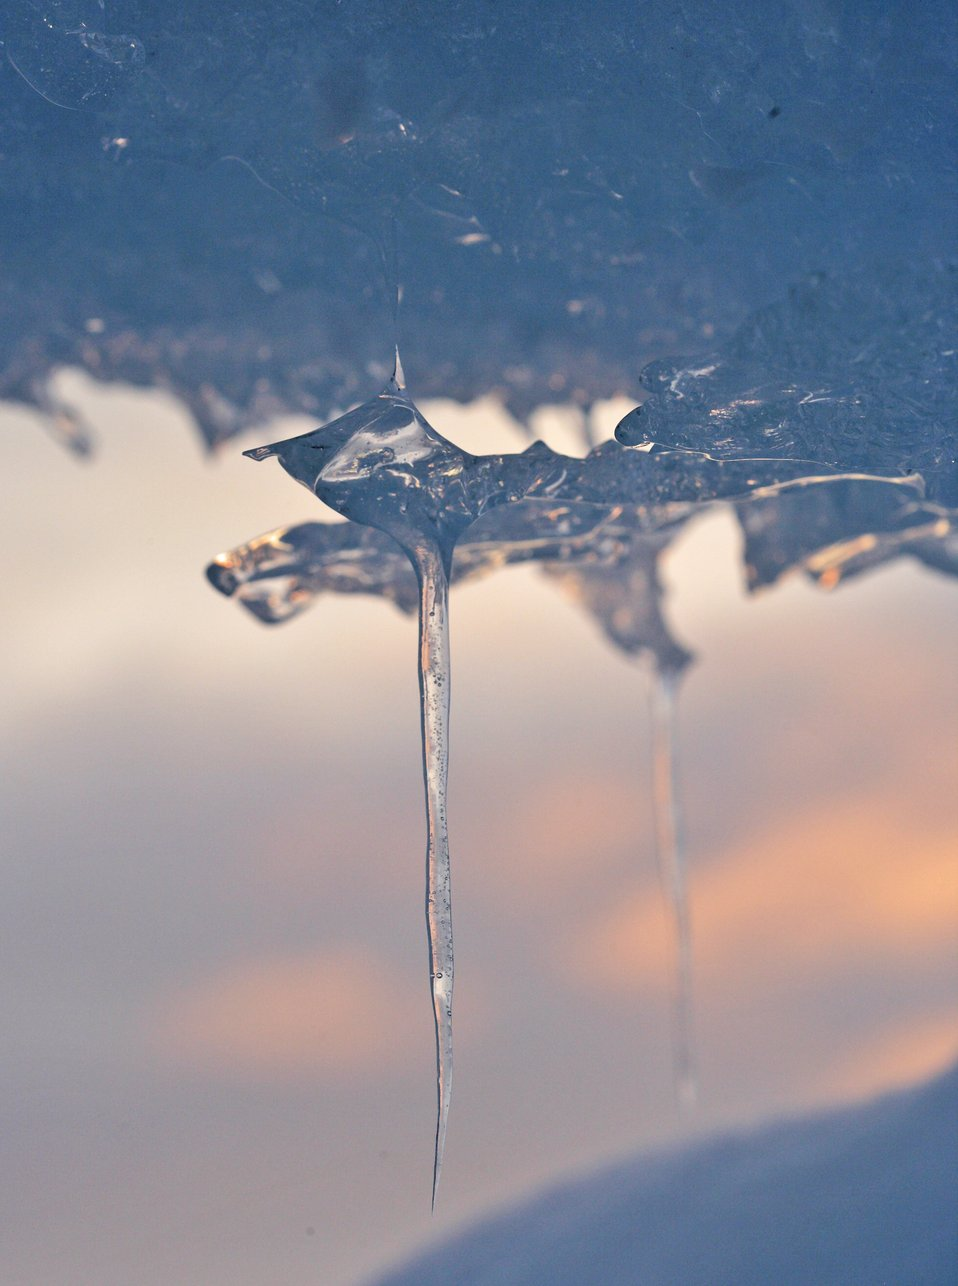 An icicle. See: http://www.naturalsciences.org/education/arctic/